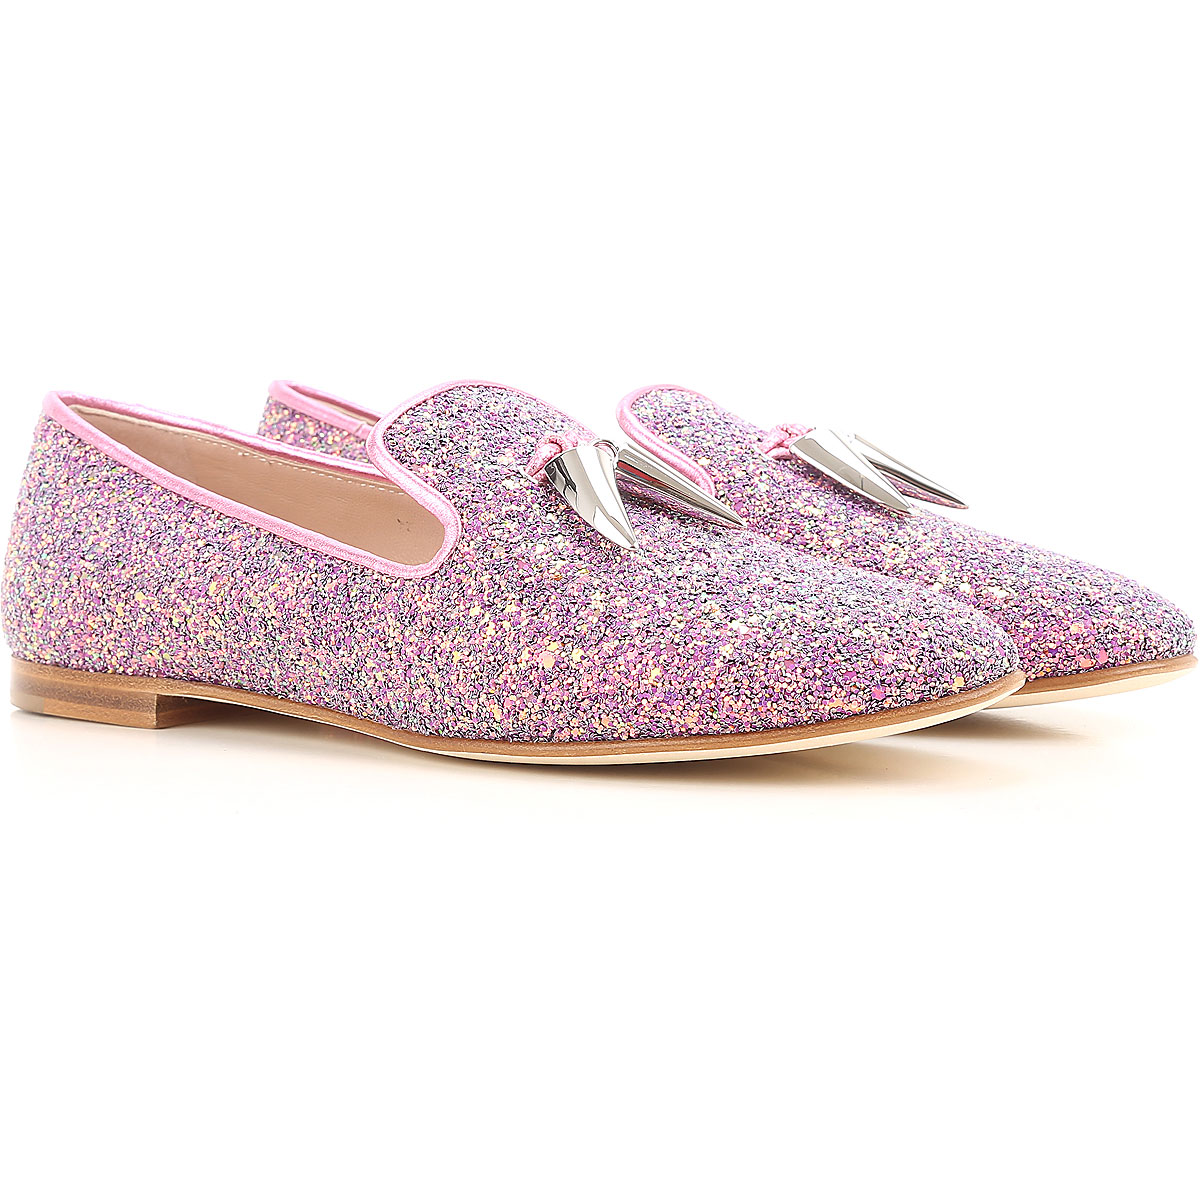 Giuseppe Zanotti Design Loafers for Women On Sale in Outlet, Glitter Pink, Leather, 2019, 5 6.5